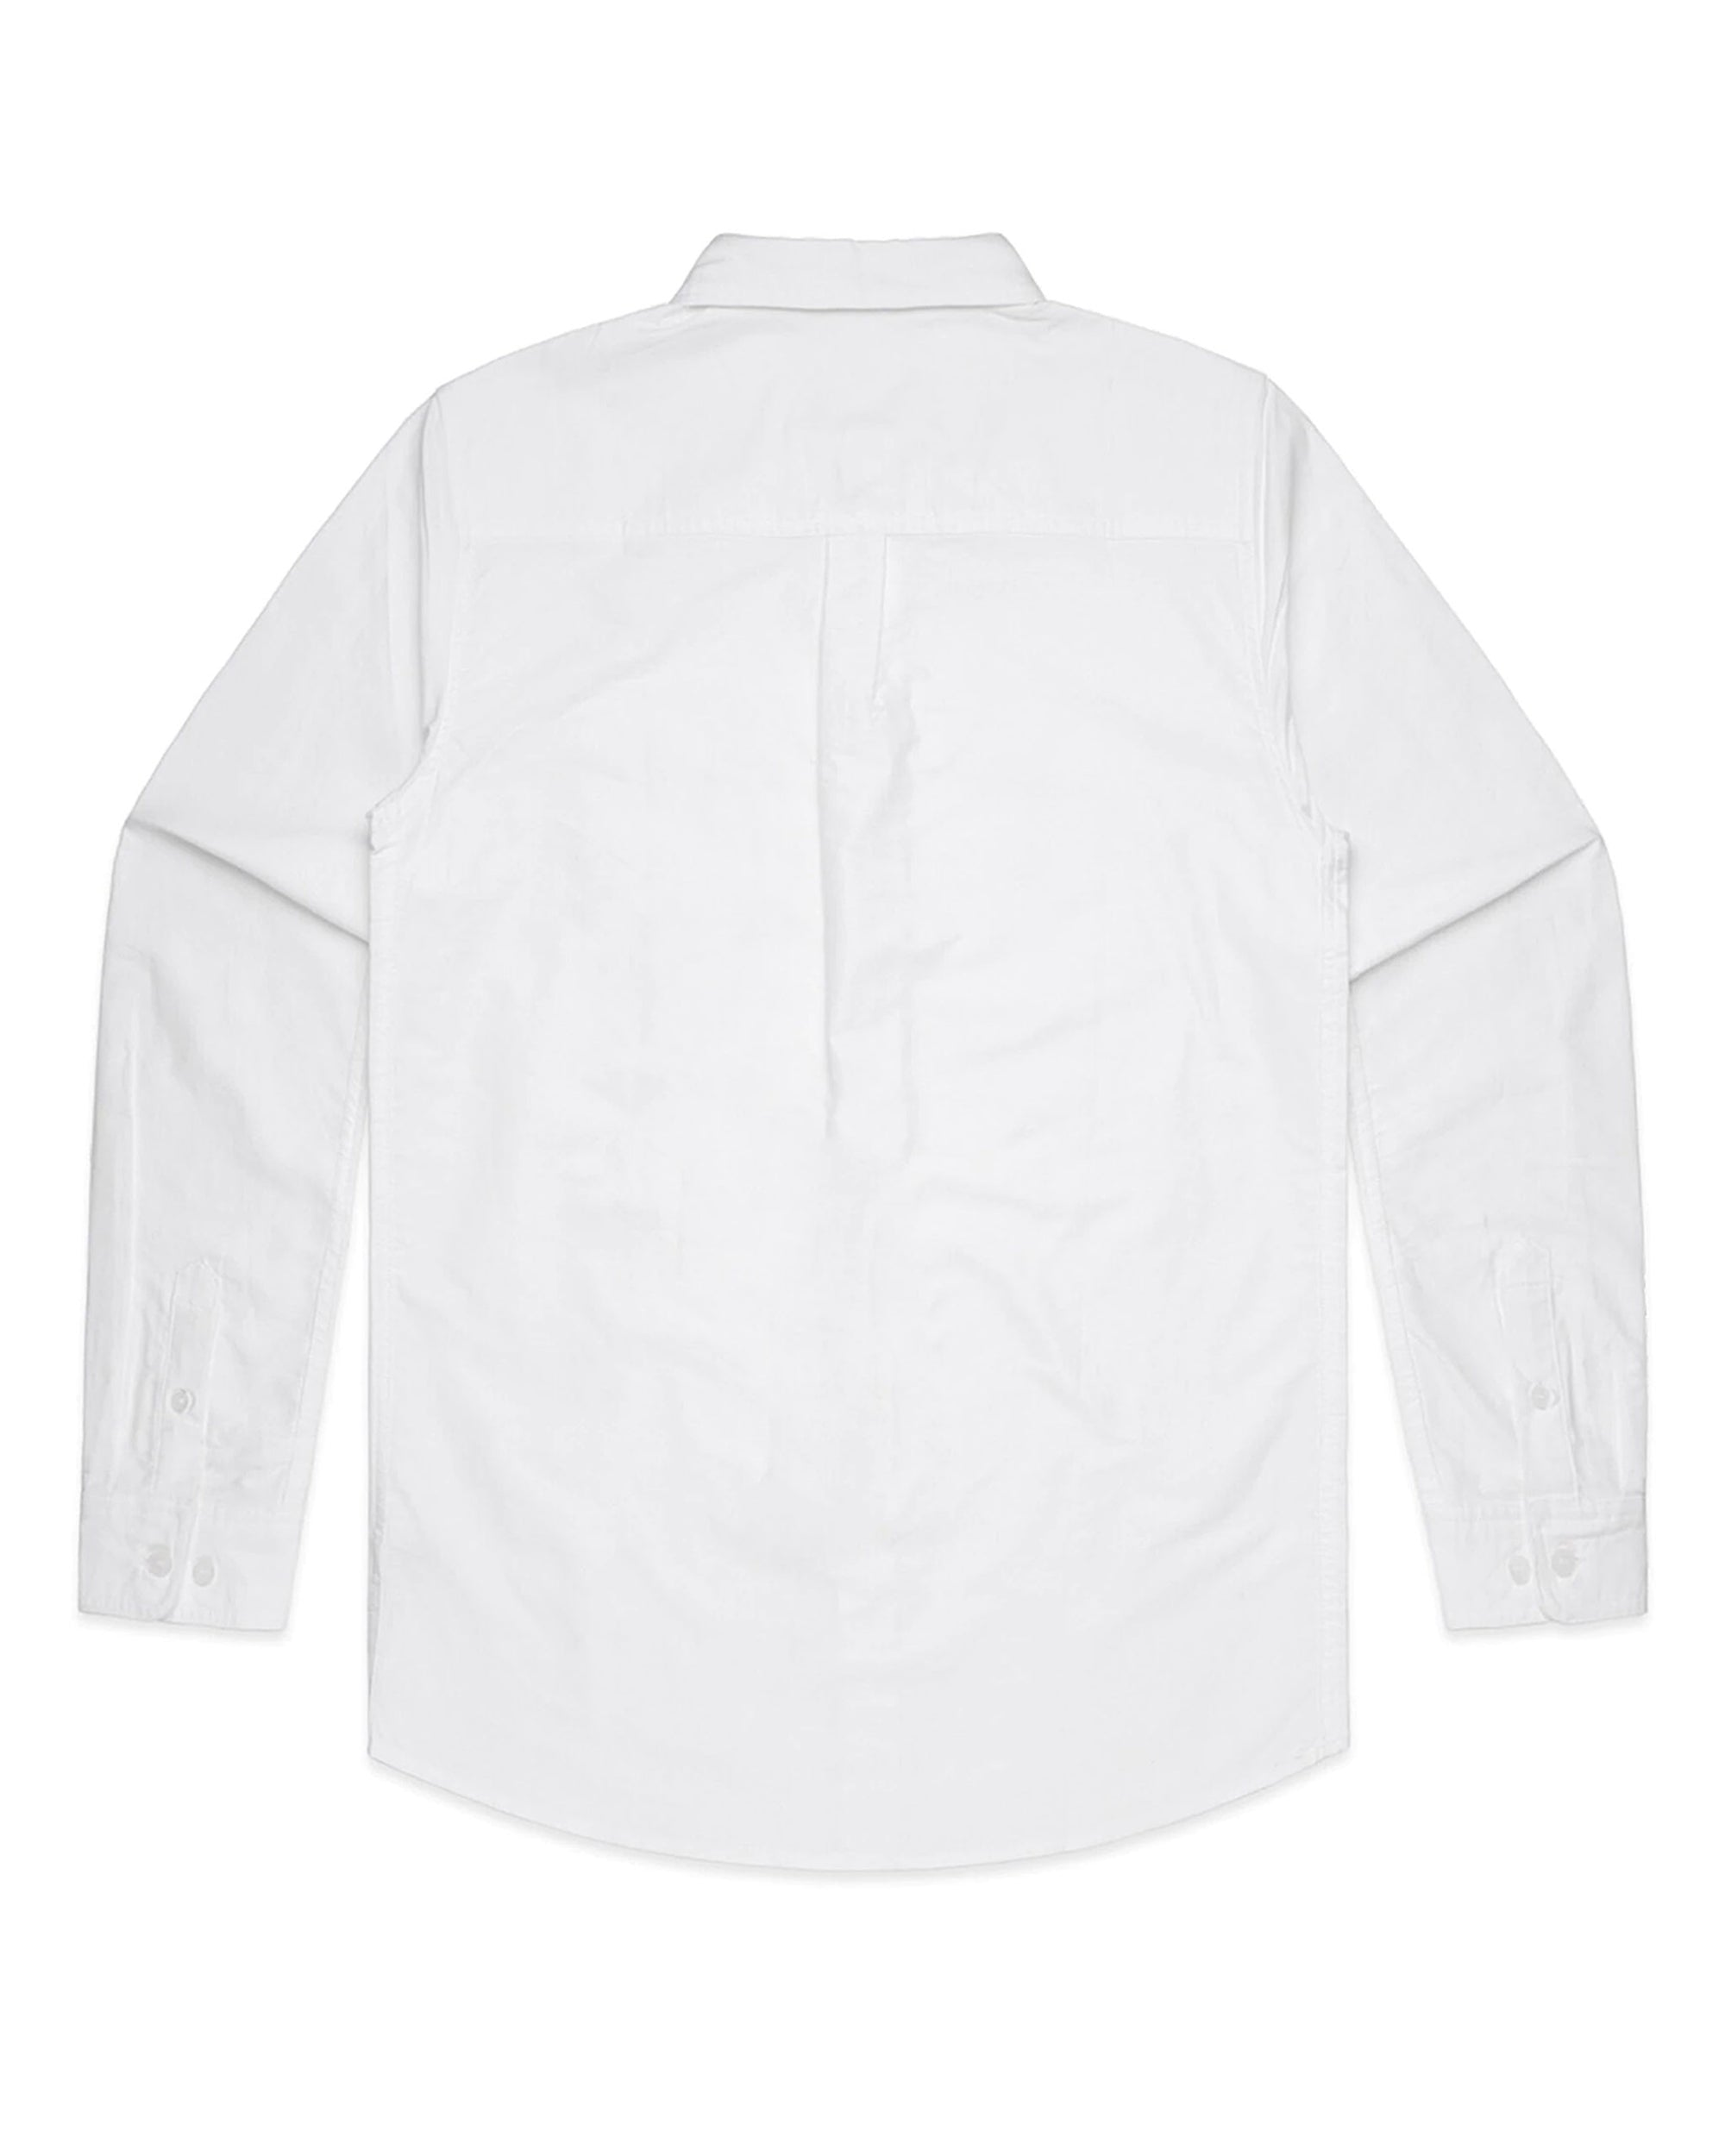 Men's White Shirt with Pocket